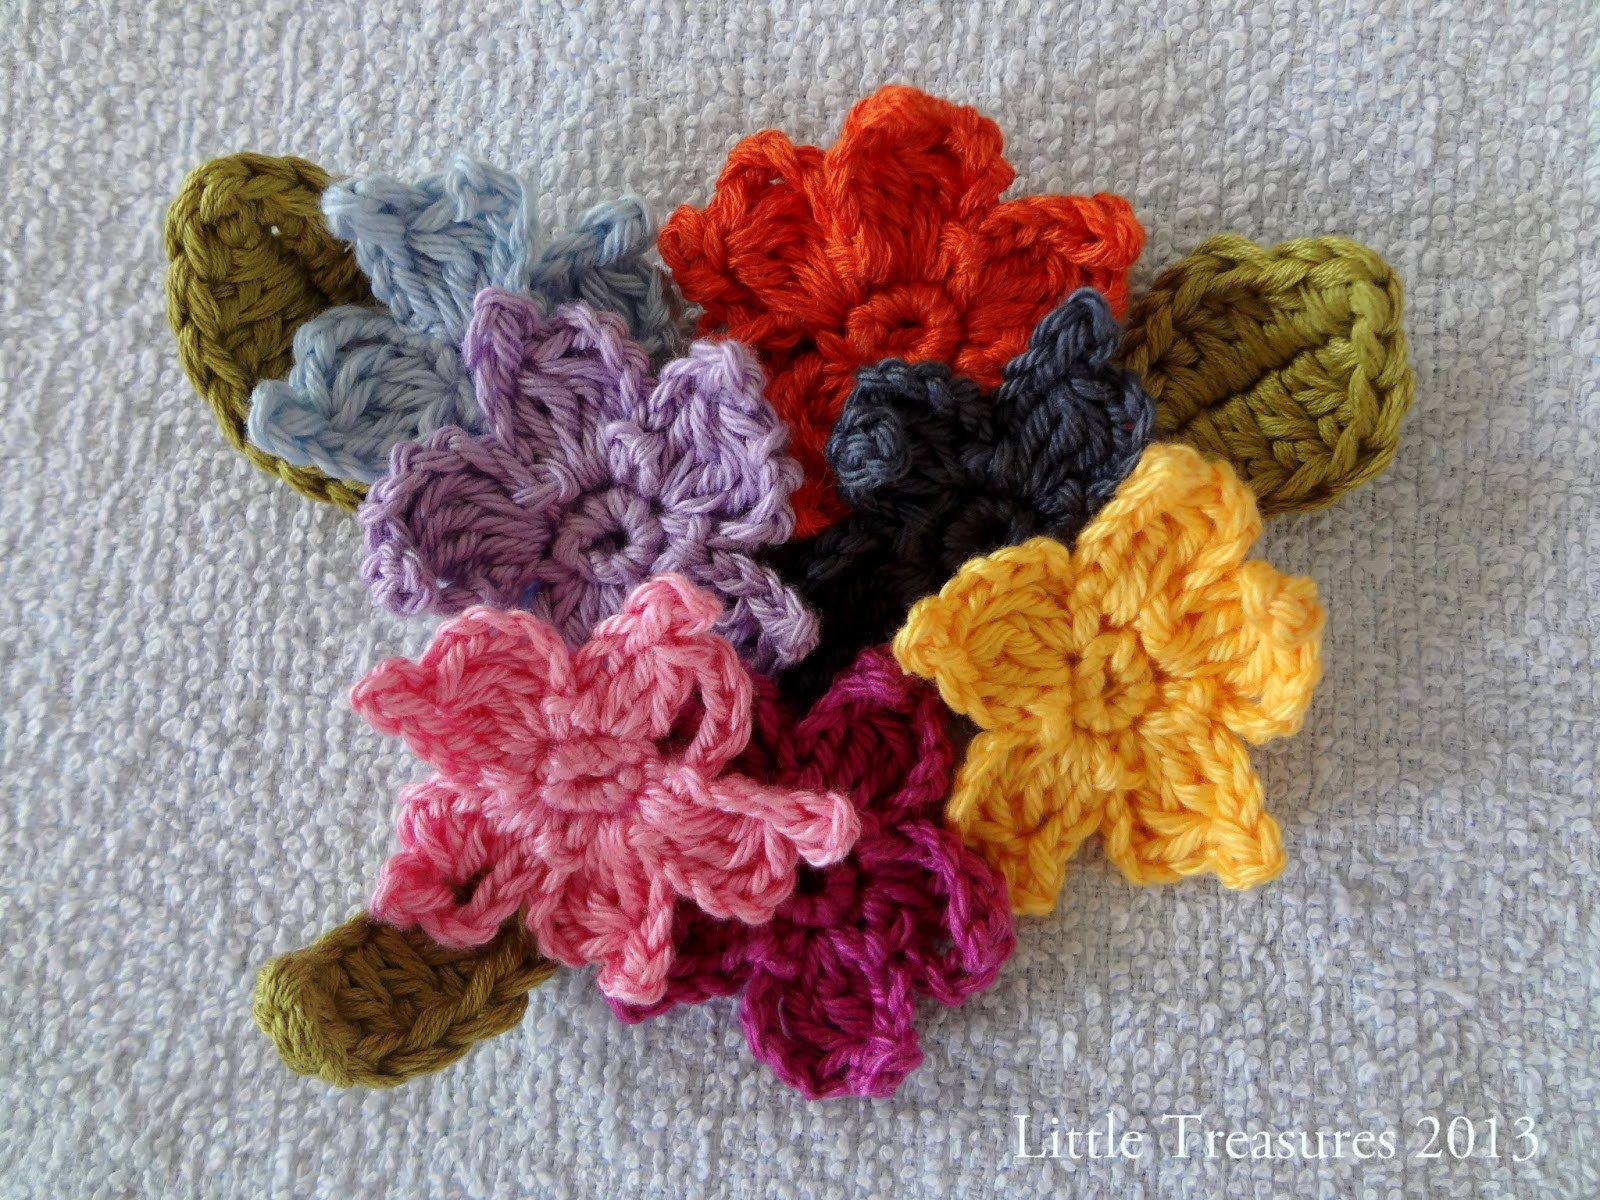 Lovely Little Treasures Adenium Free Crochet Flower Tutorial Free Crochet Stitches Of Awesome 41 Models Free Crochet Stitches